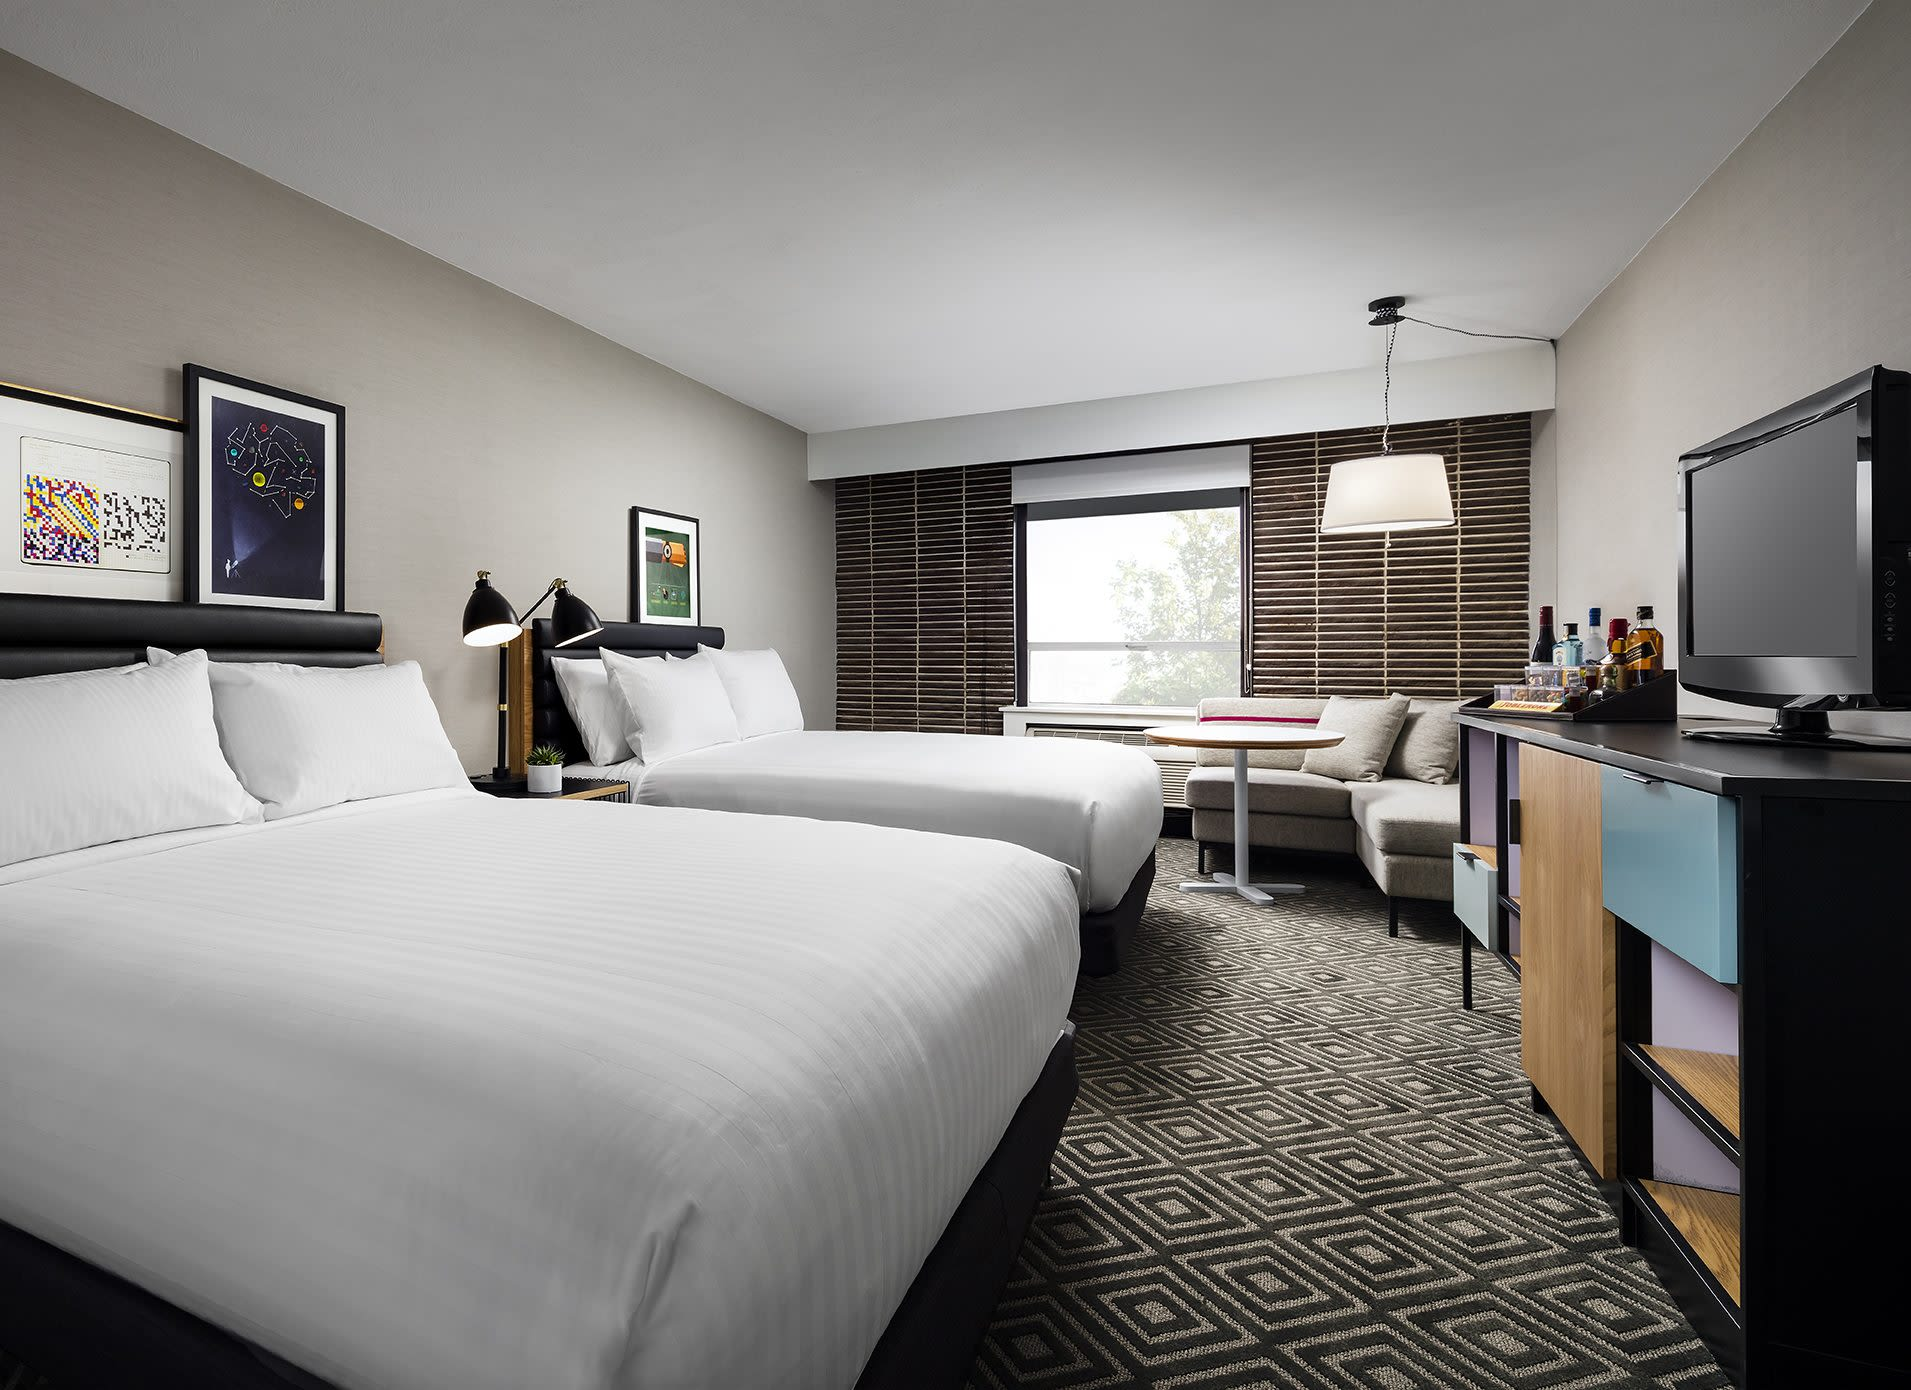 Deluxe two queen bed room at the Freepoint Hotel Cambridge, Tapestry Collection West Cambridge